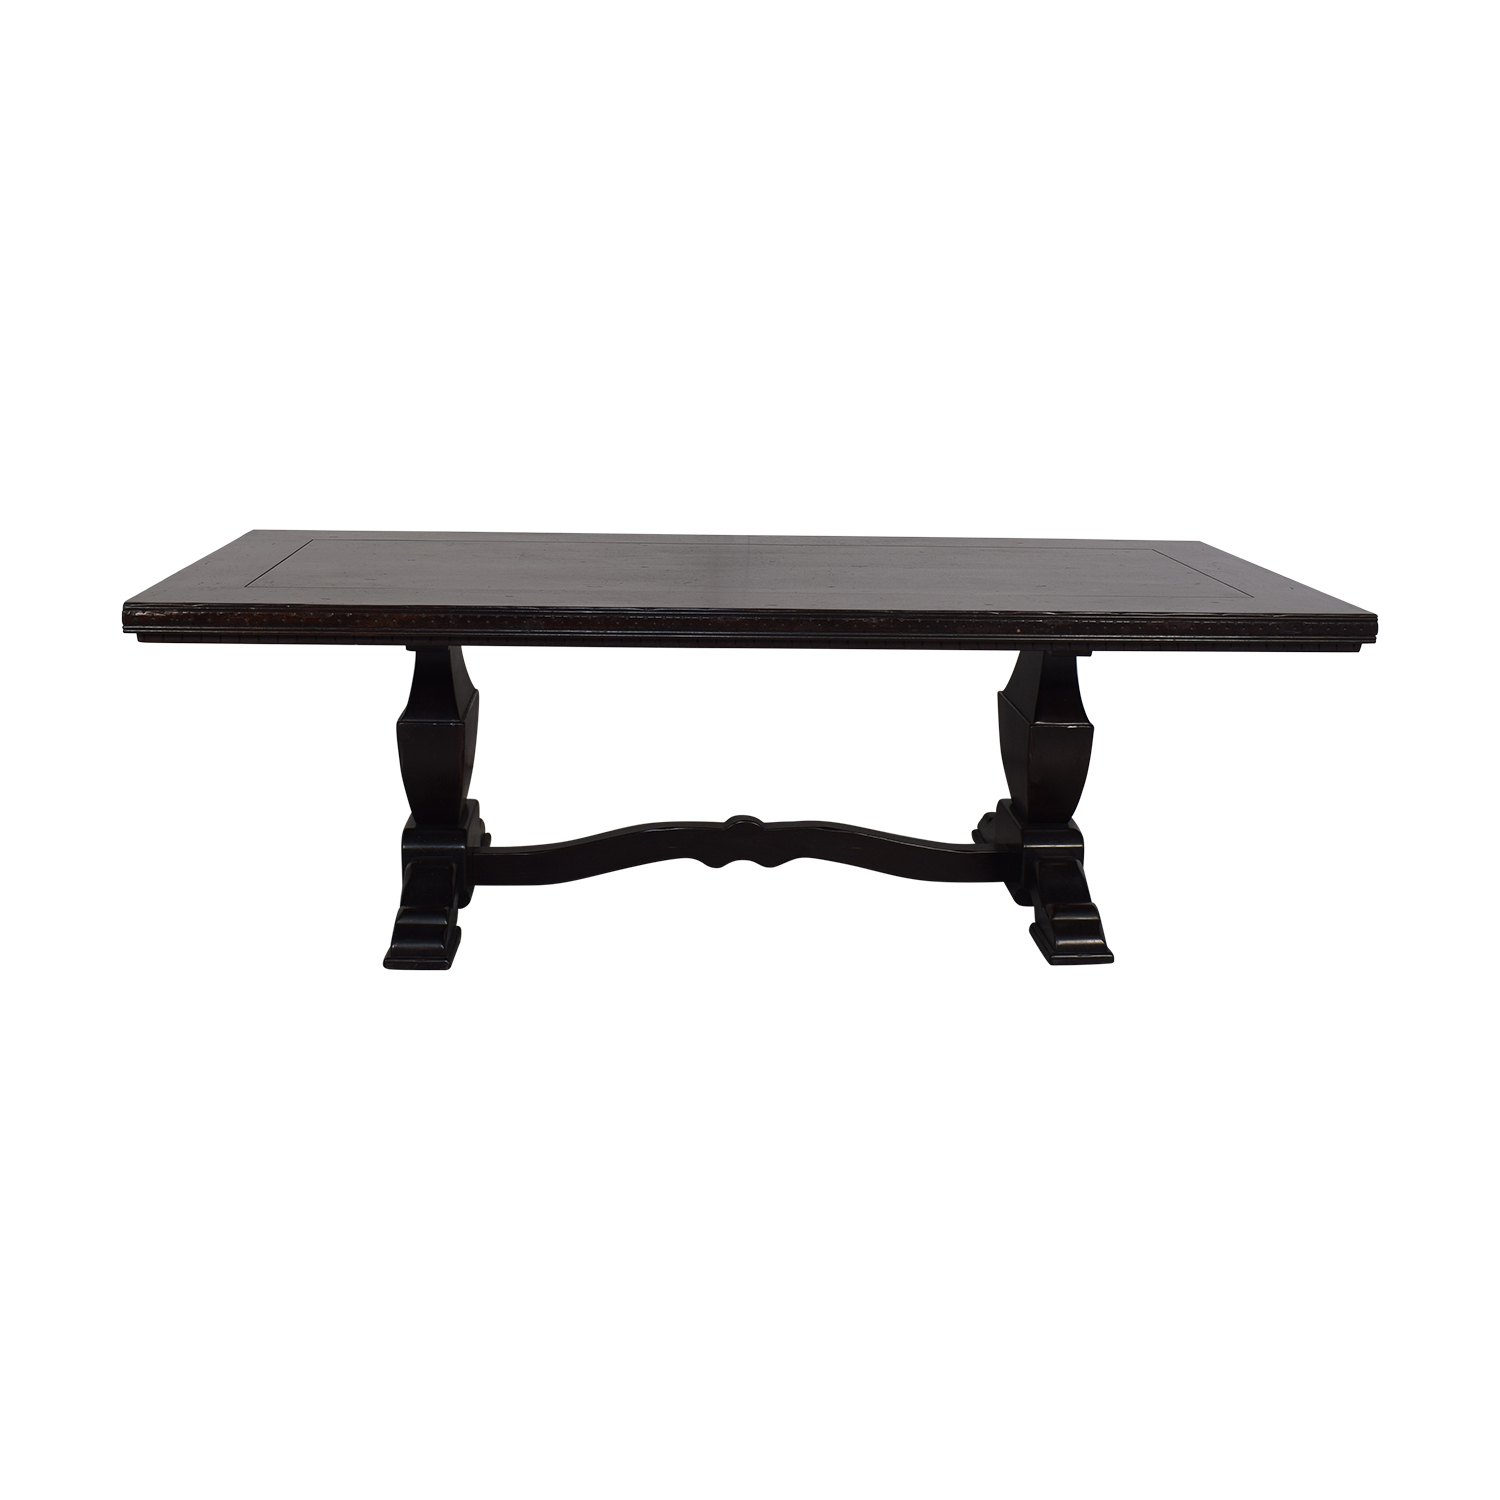 South Cone Furniture South Cone Furniture Salvatore Reclaimed Wood Dining Table pa